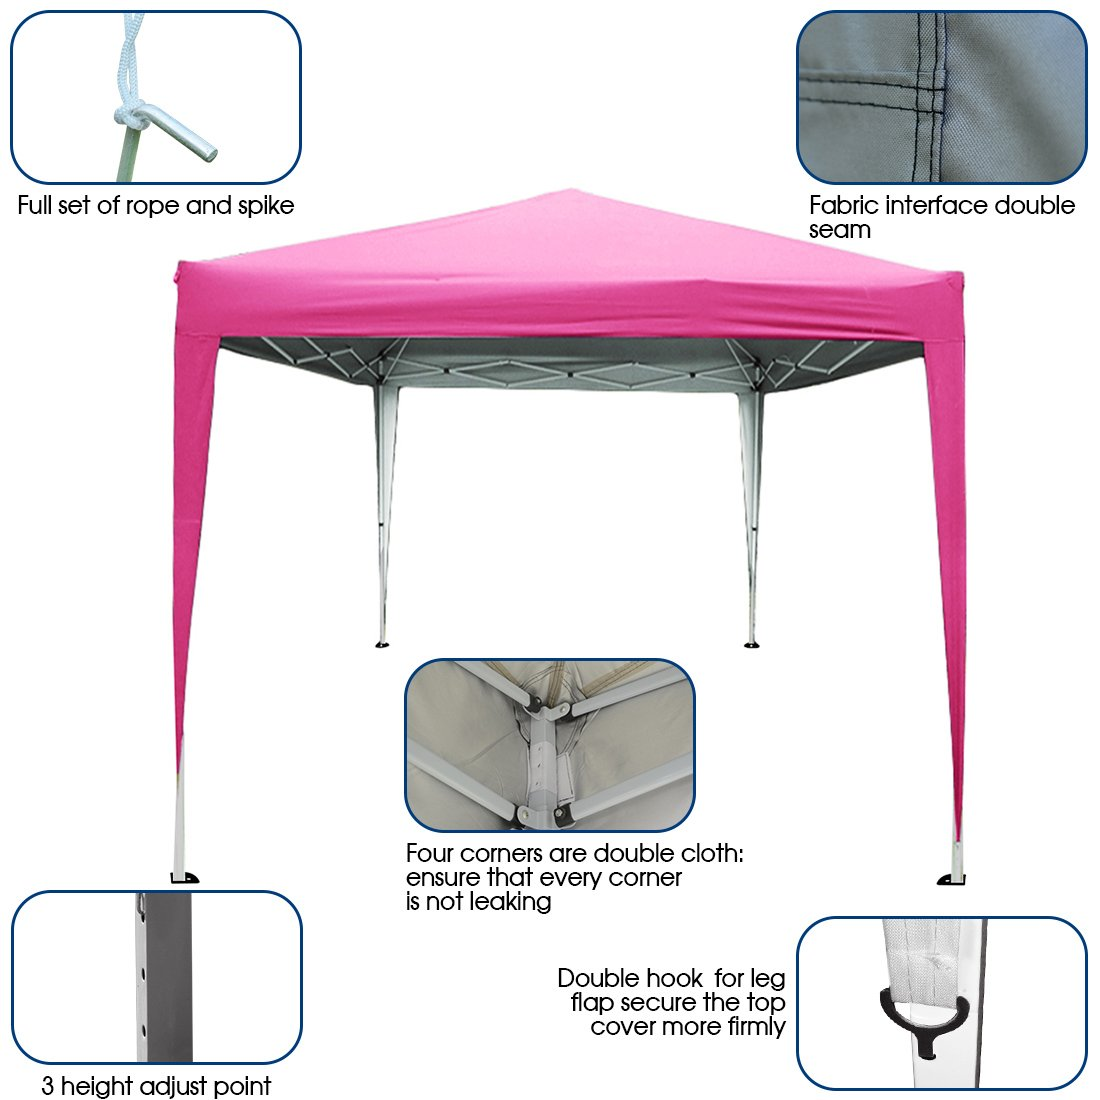 PeakTop 10 x10 Feet EZ Pop Up Canopy Gazebo Party Tent Instant Folding Commercial Tent Beach Sun Shade Carry Bag 100% Waterproof-5 Colors (Pink) by PeakTop (Image #2)